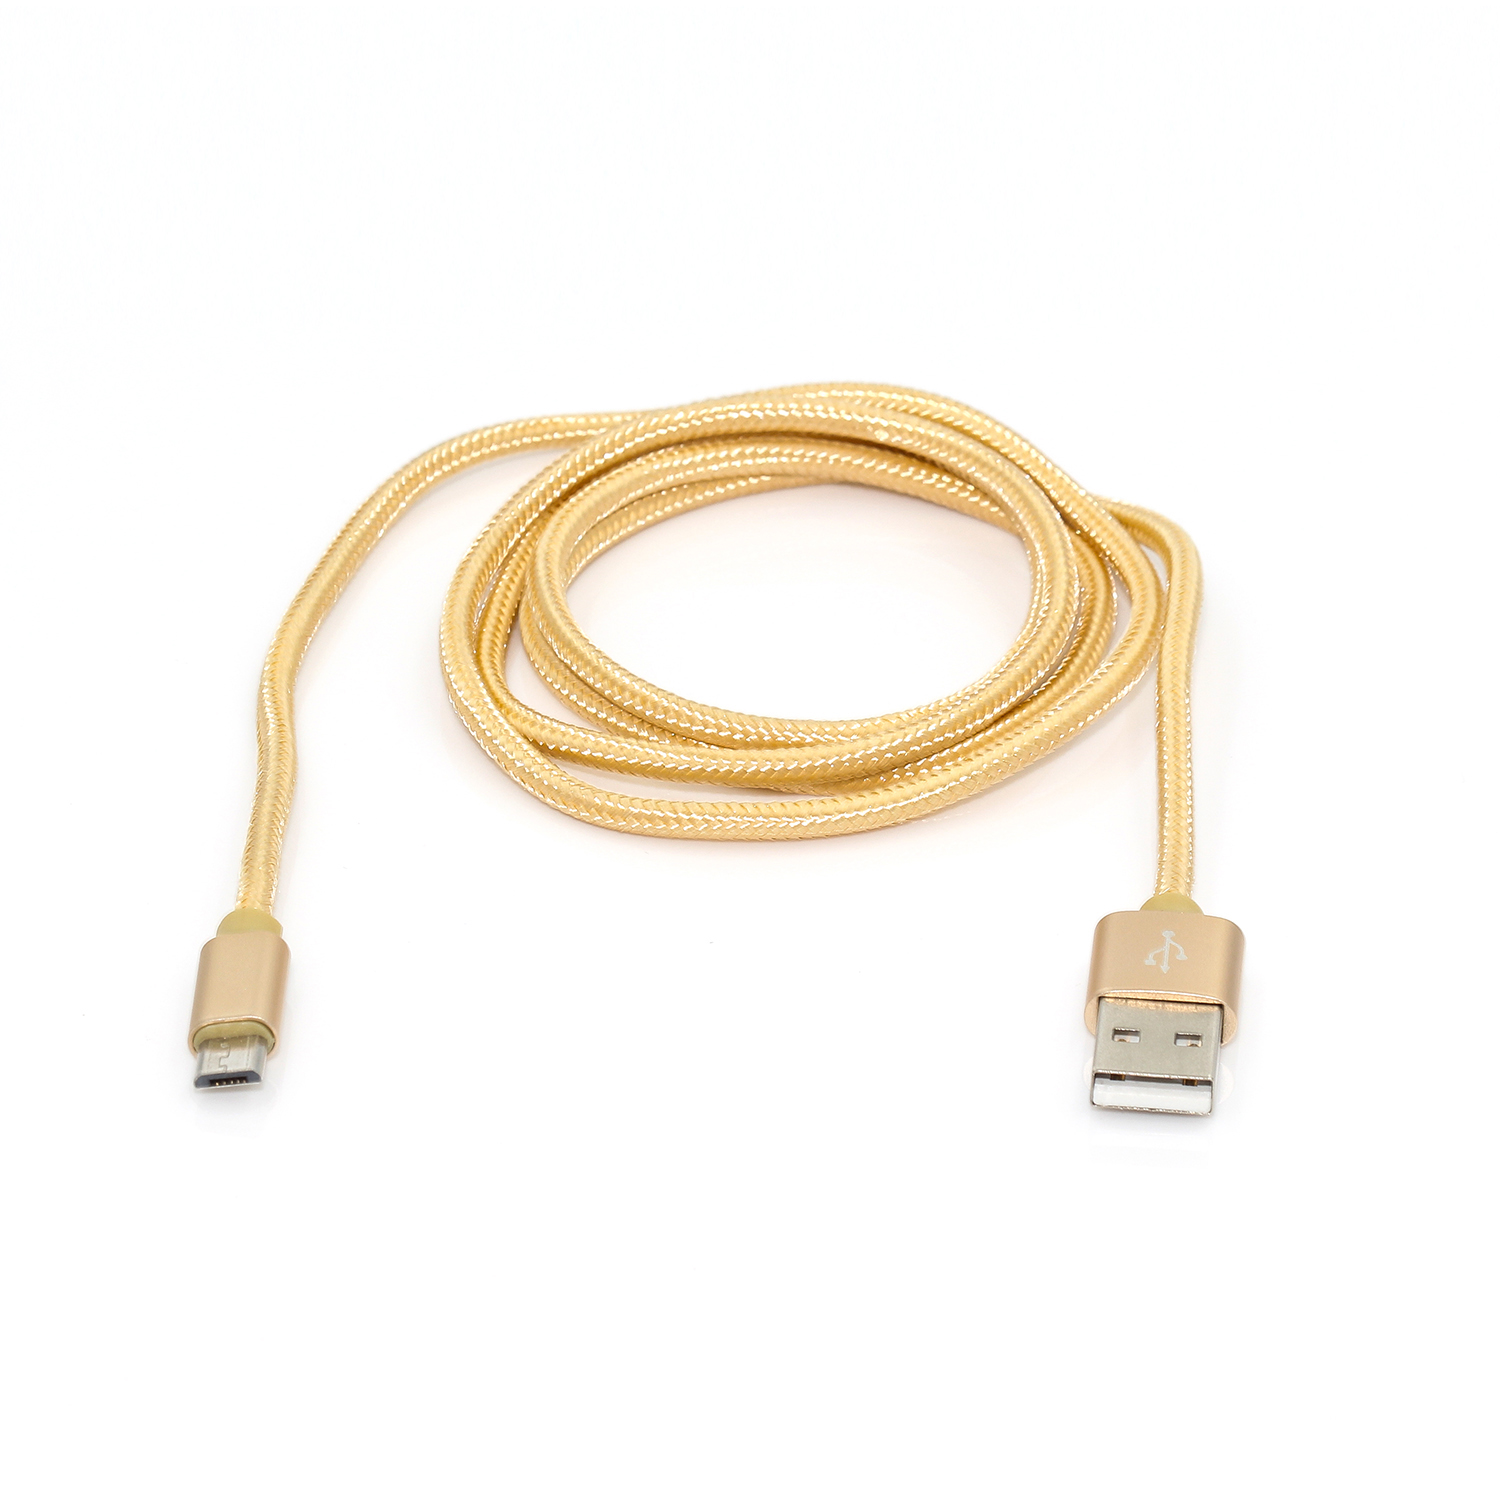 Free Sample LINEIN type c cable charger smart phone data transfer usb charging fast cable Nylon usb cable